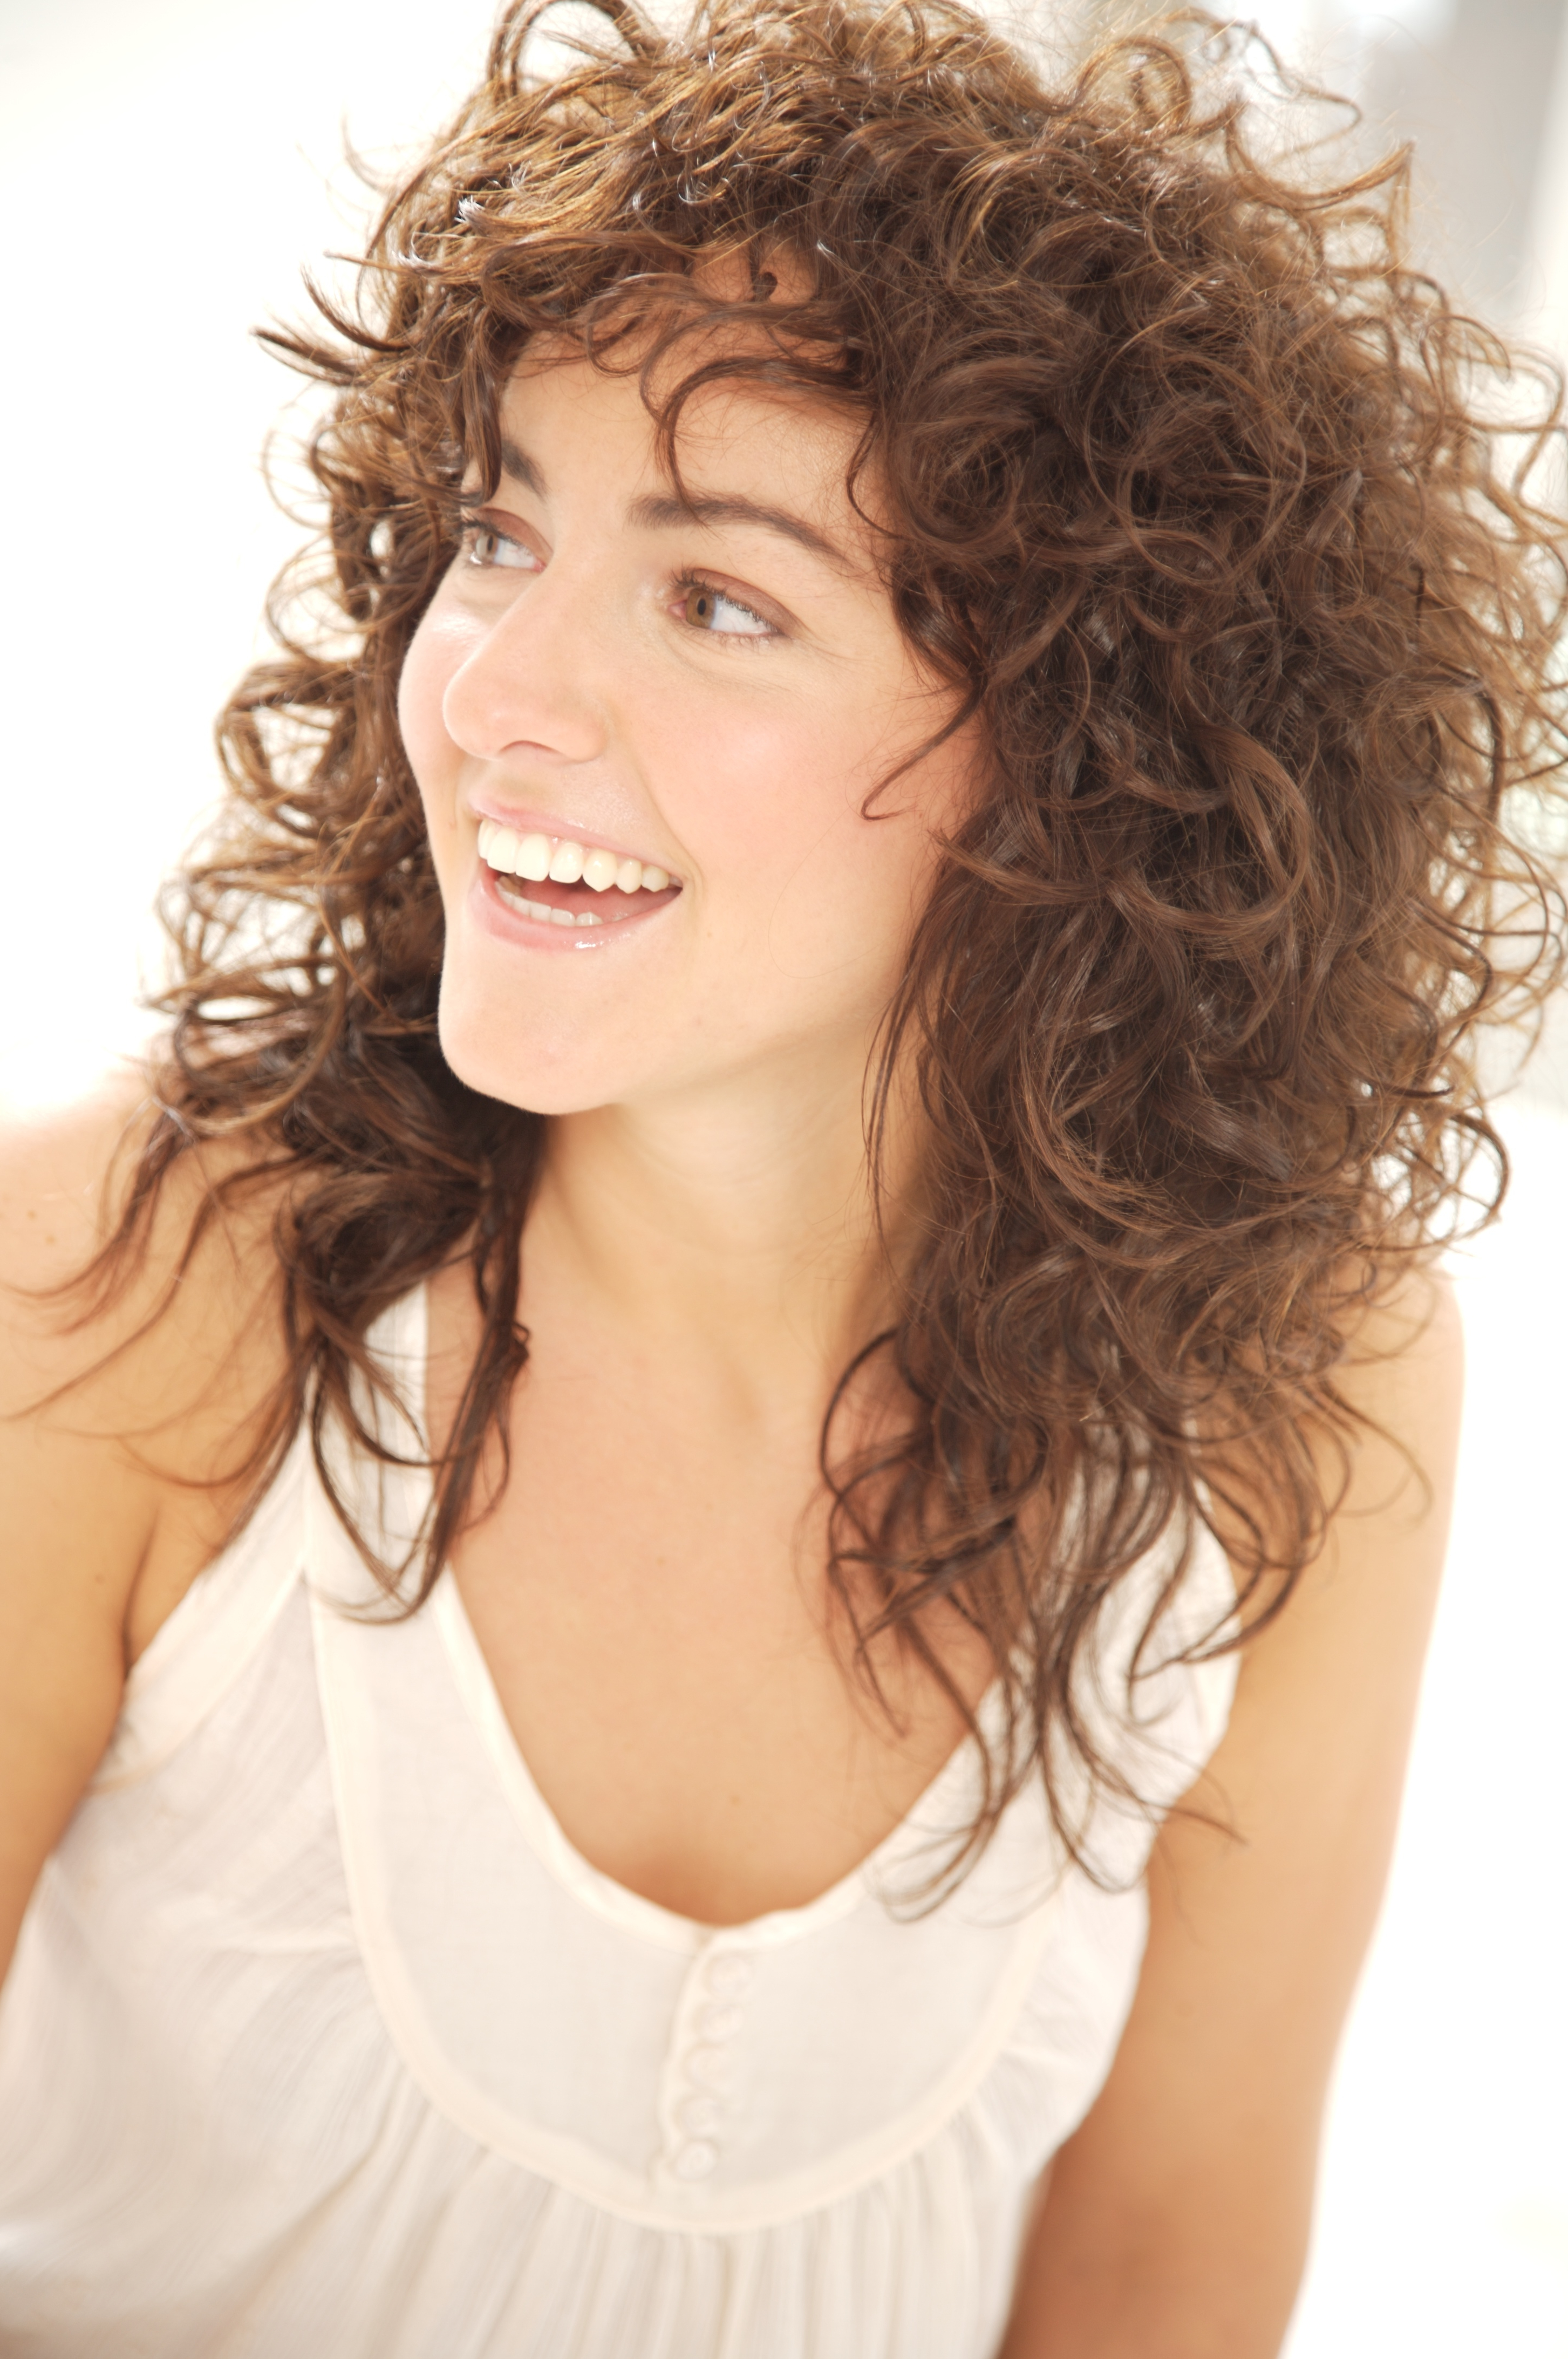 Hair Cuts : Naturally Curly Haircuts Short For Round Faces And Hair Intended For Well Known Naturally Curly Medium Hairstyles (View 11 of 20)